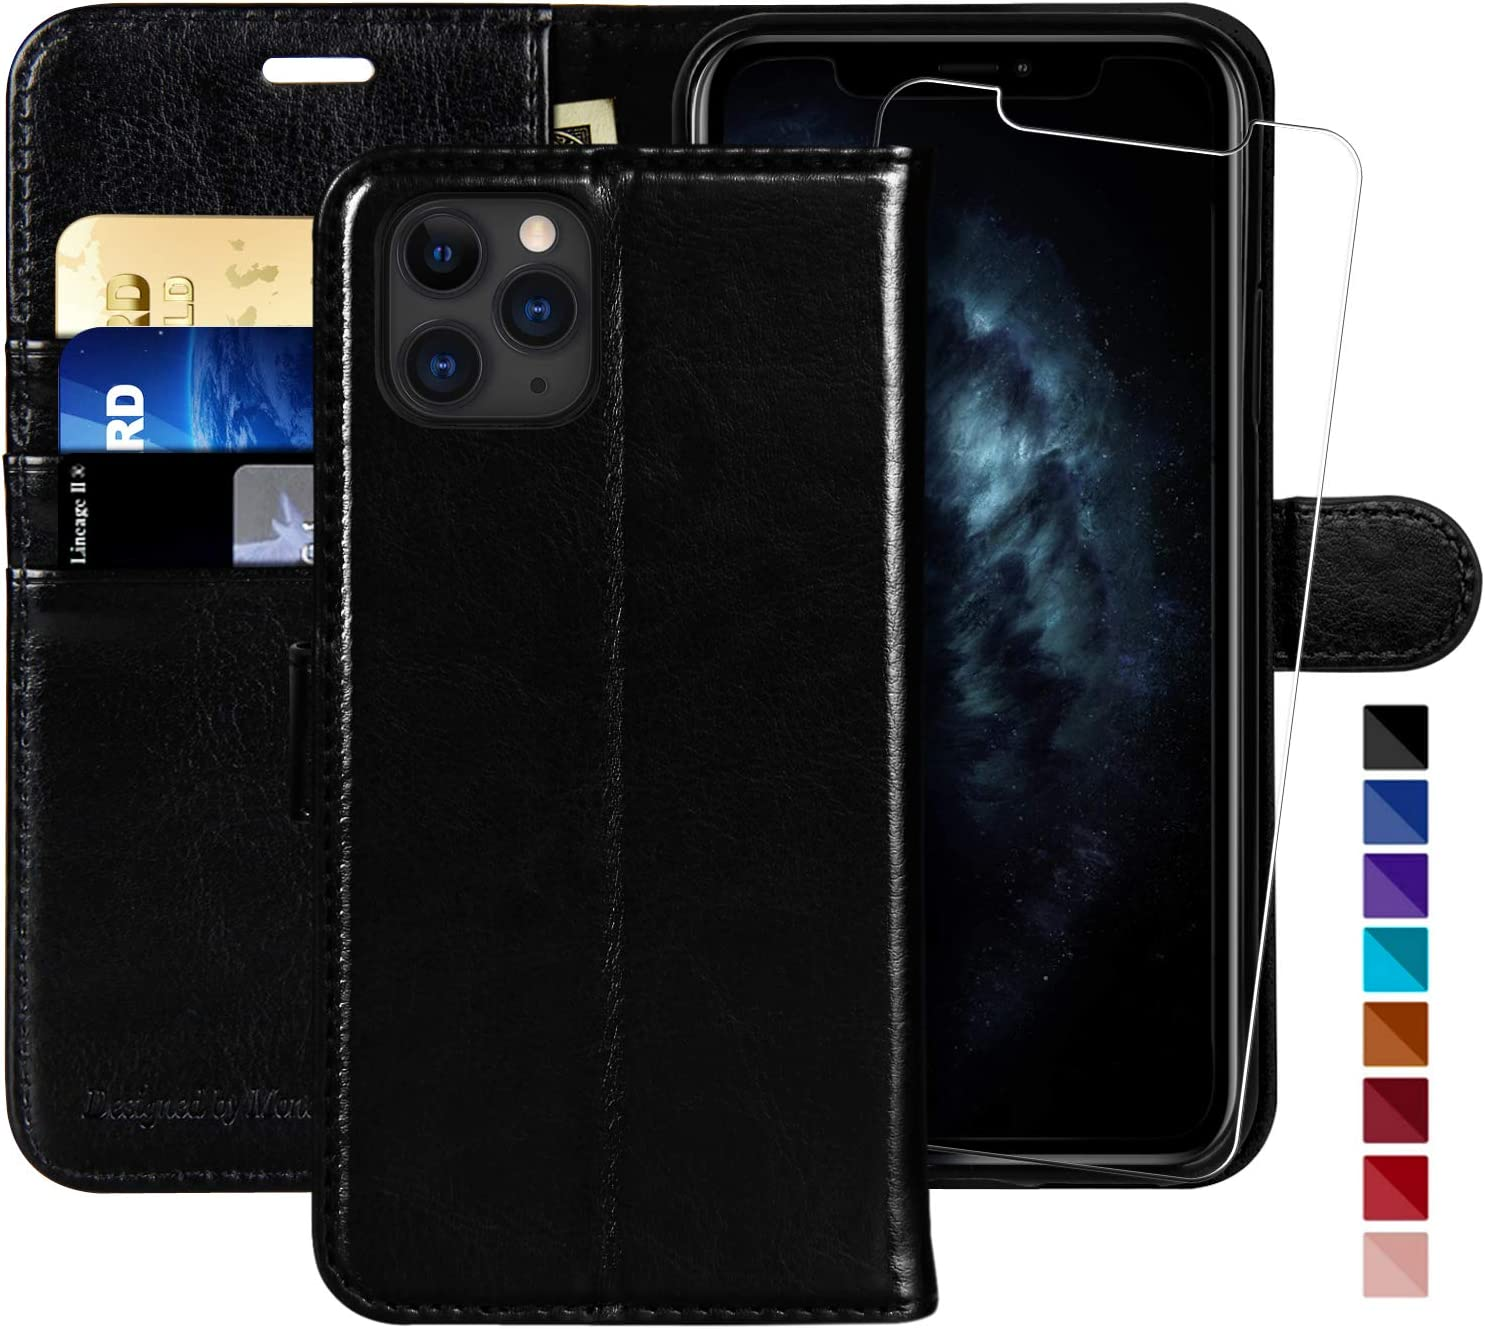 iPhone 11 Pro Wallet Case,5.8 inch,MONASAY [Glass Screen Protector Included] [RFID Blocking] Flip Folio Leather Cell Phone Cover with Credit Card Holder for iPhone 11 Pro